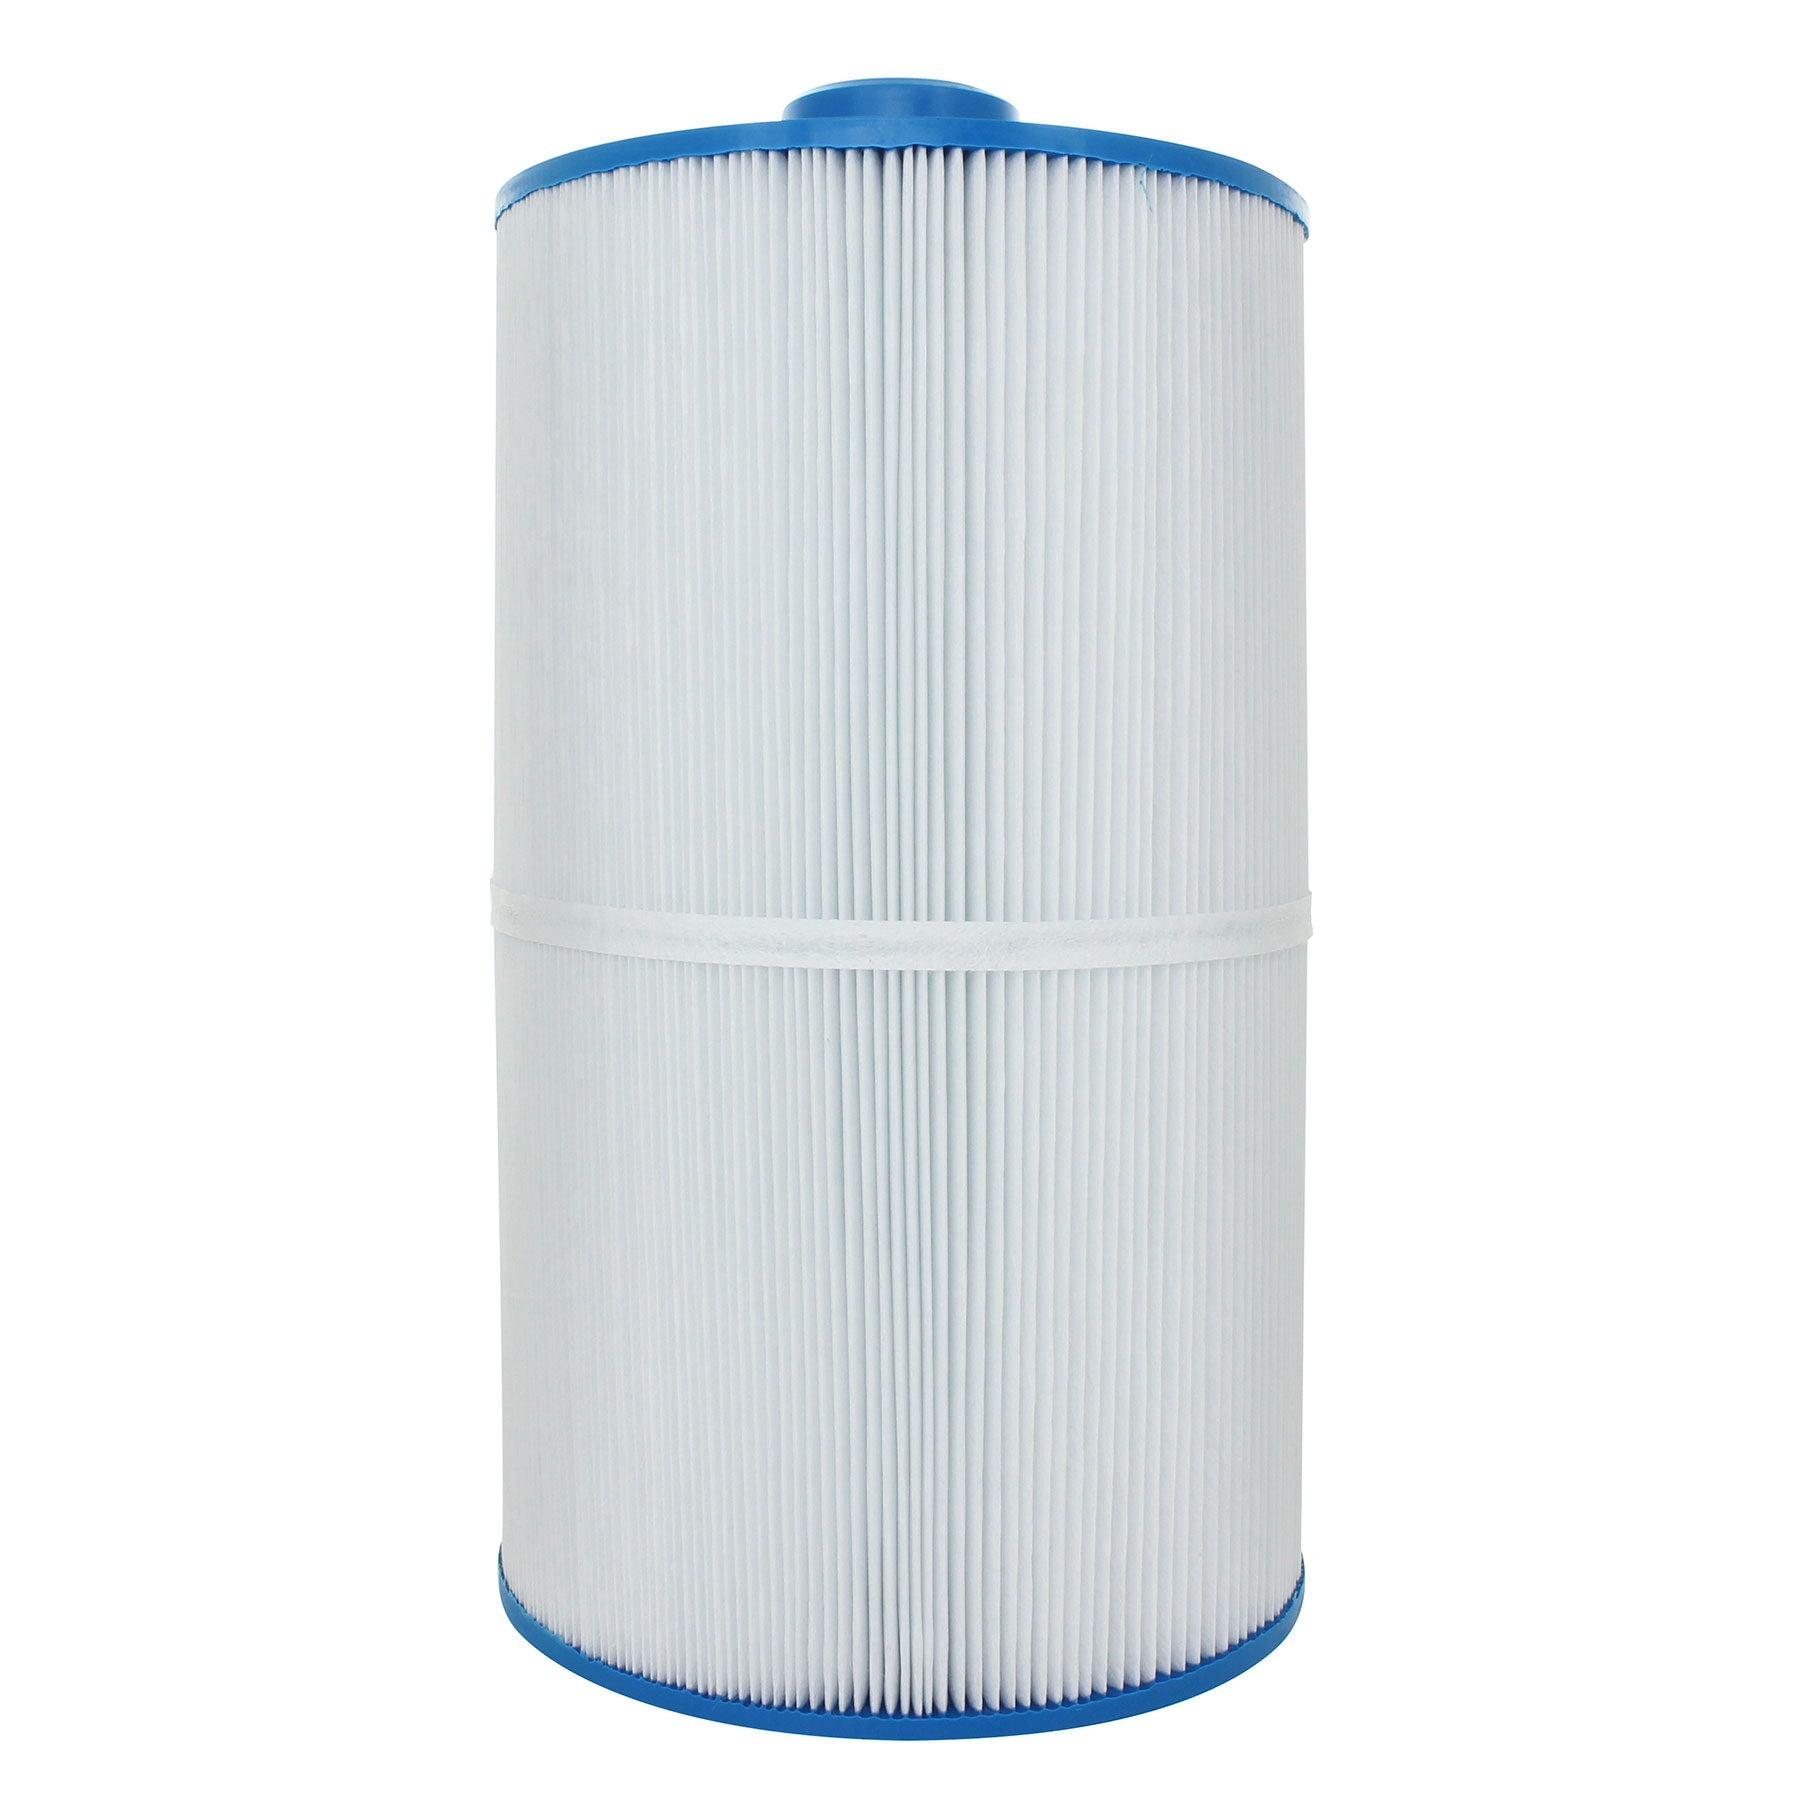 Replaces Unicel C-8475, Pleatco PCS75N • Pool & Spa Filter Cartridge-Filter Cartridge-FilterDeal.com